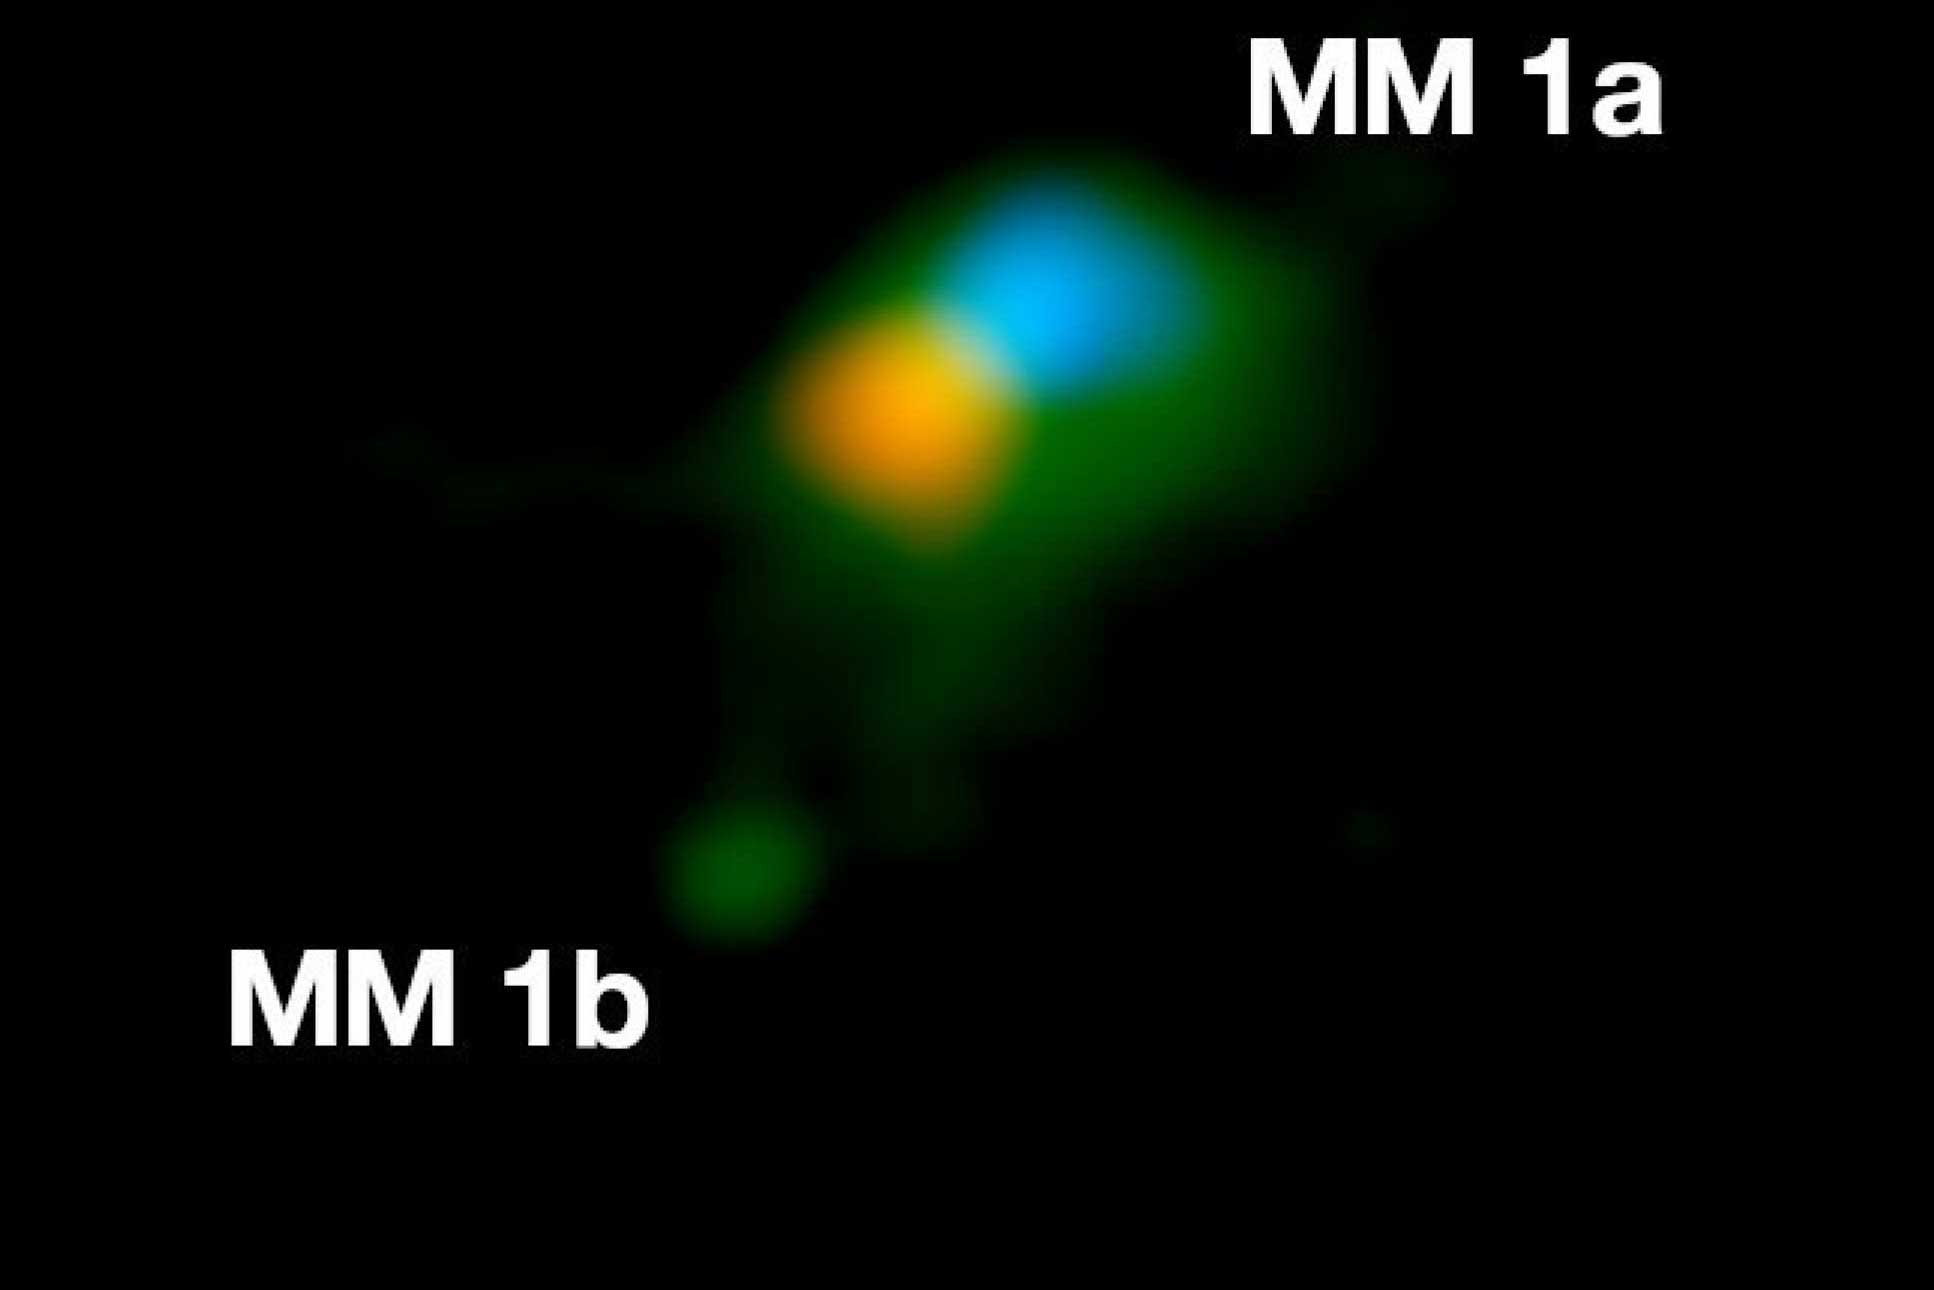 Observation of the dust emission (green) and hot gas rotating in the disc around MM 1a (red is receding gas, blue is approaching gas). MM 1b is seen the lower left. Credit: J. D. Ilee / University of Leeds.